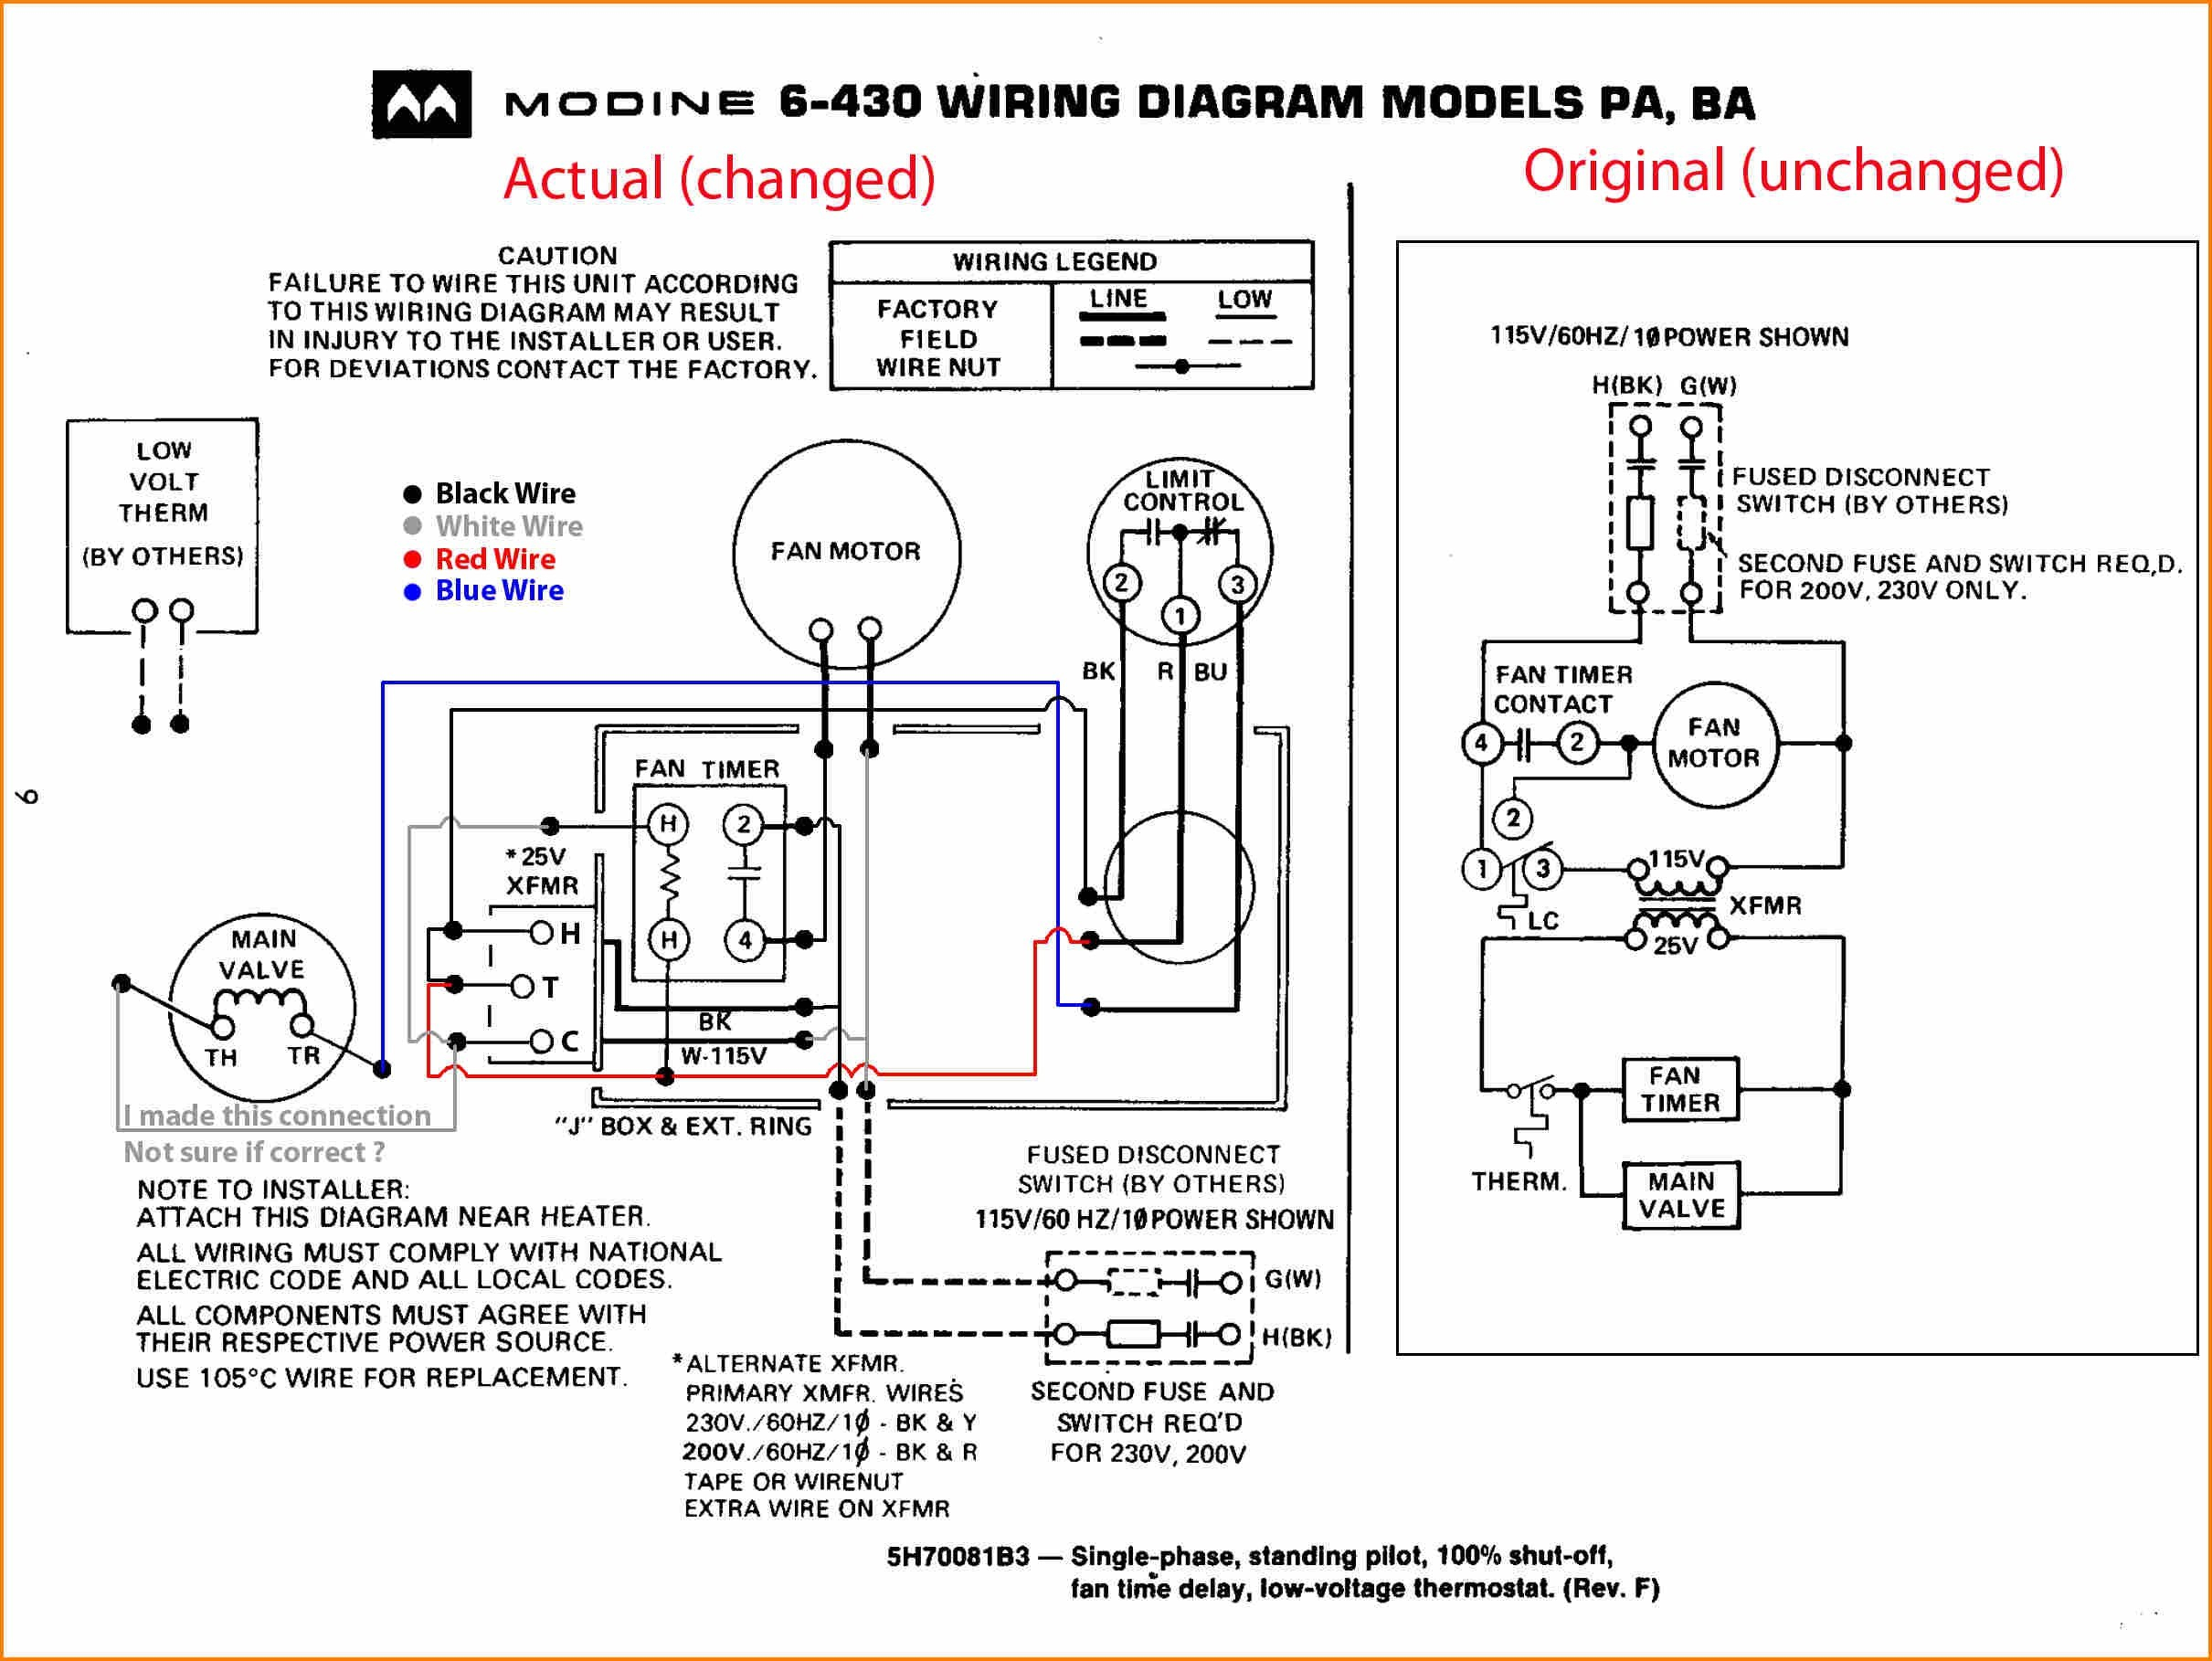 fasco blower motor wiring diagram Collection-Wiring Diagram for Fasco Blower Motor Best Ge Furnace Blower Motor Wiring Diagram 3 Speed Furnace 7-o